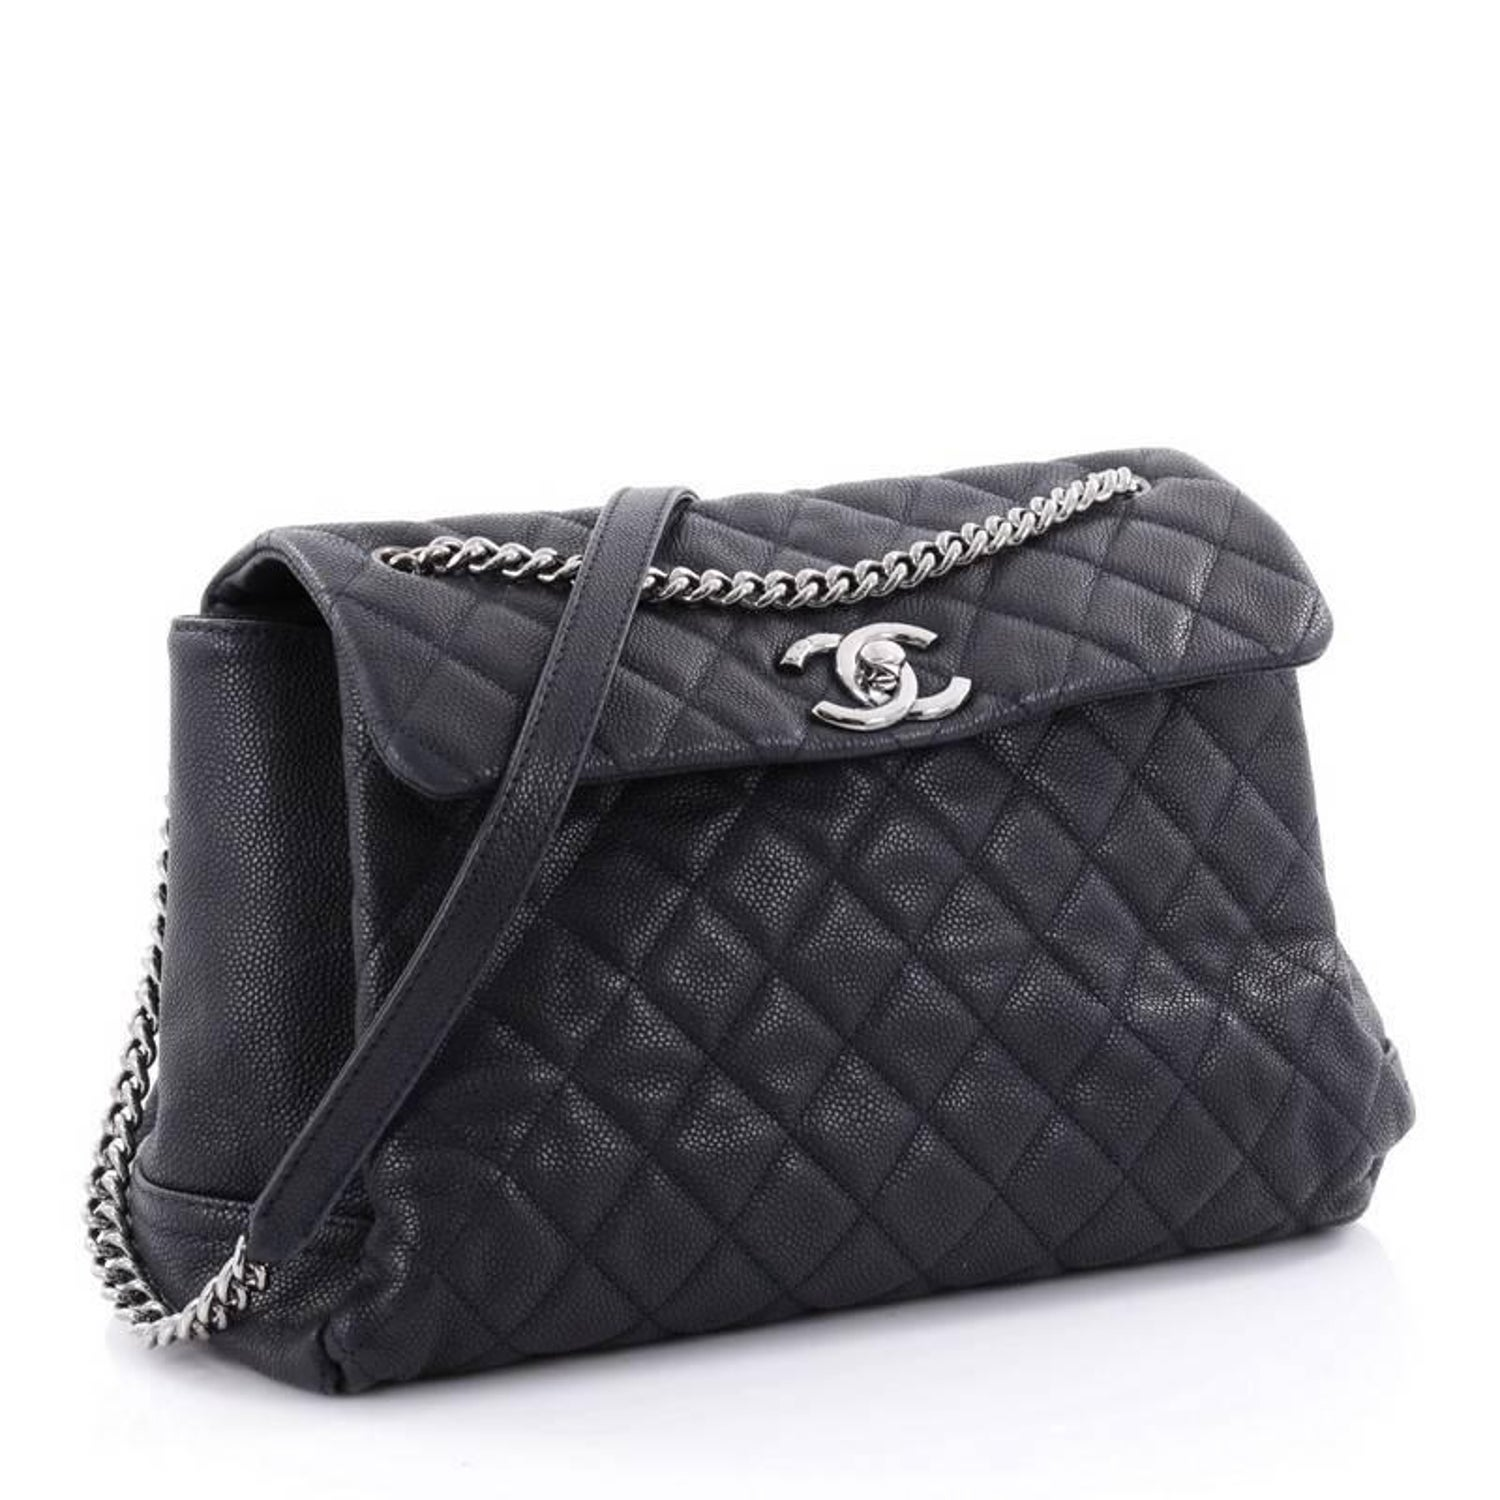 2dc6dadc639eb0 Chanel Lady Pearly Flap Bag Quilted Matte Caviar Large at 1stdibs